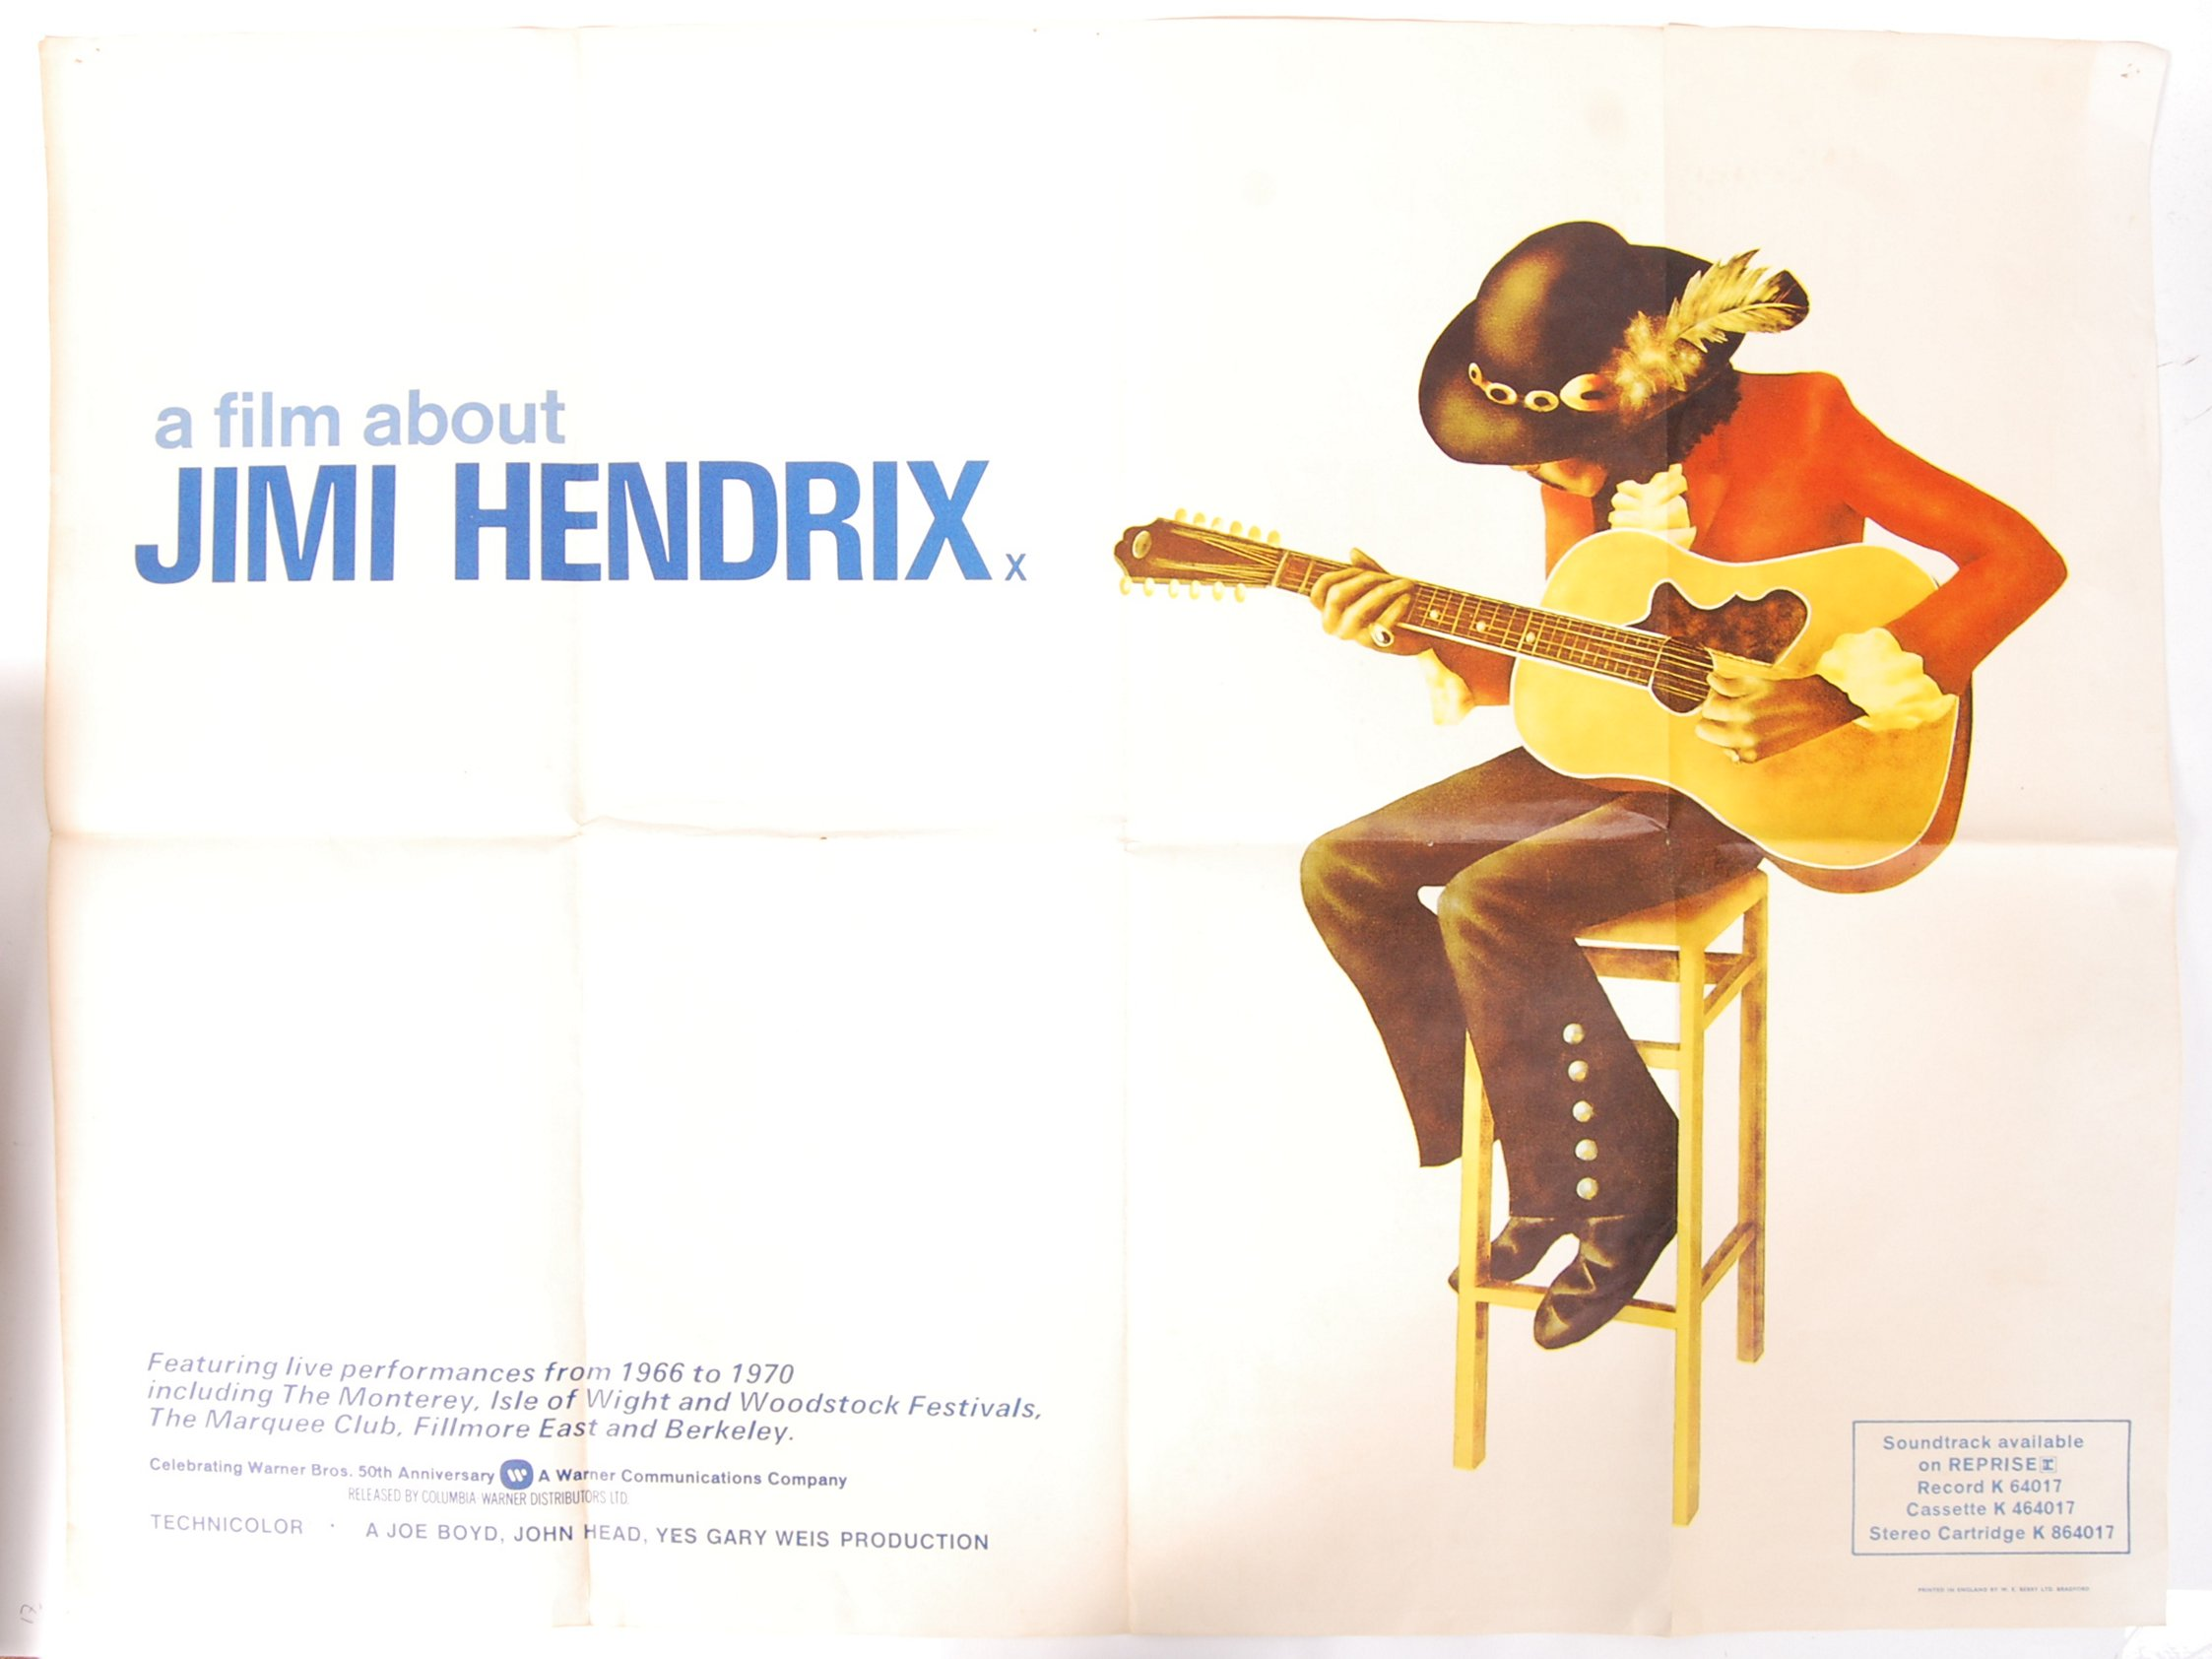 Lot 32 - ' A FILM ABOUT JIMI HENDRIX ' 1973 ORIGINAL CINEMA